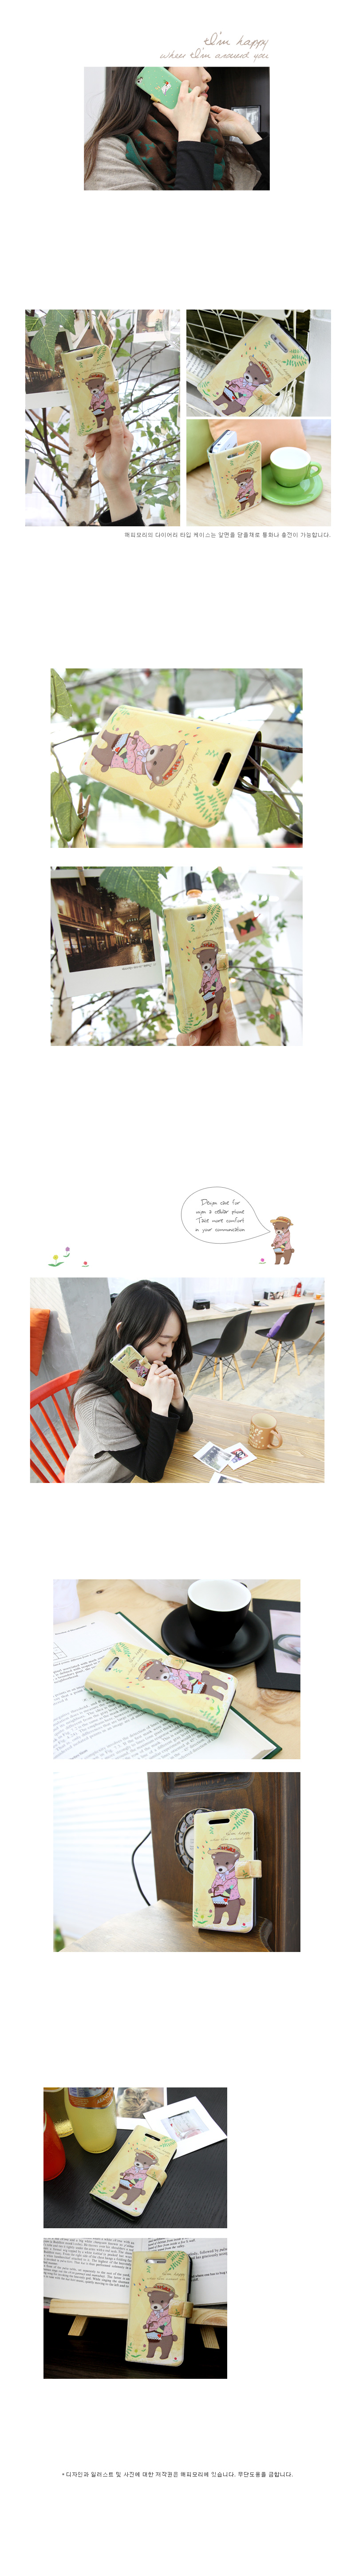 [HAPPYMORI] Flip Cover Case _ Walking in the springtime(iPhone4_4s,iPhone5_5s,iPhone6_6s)